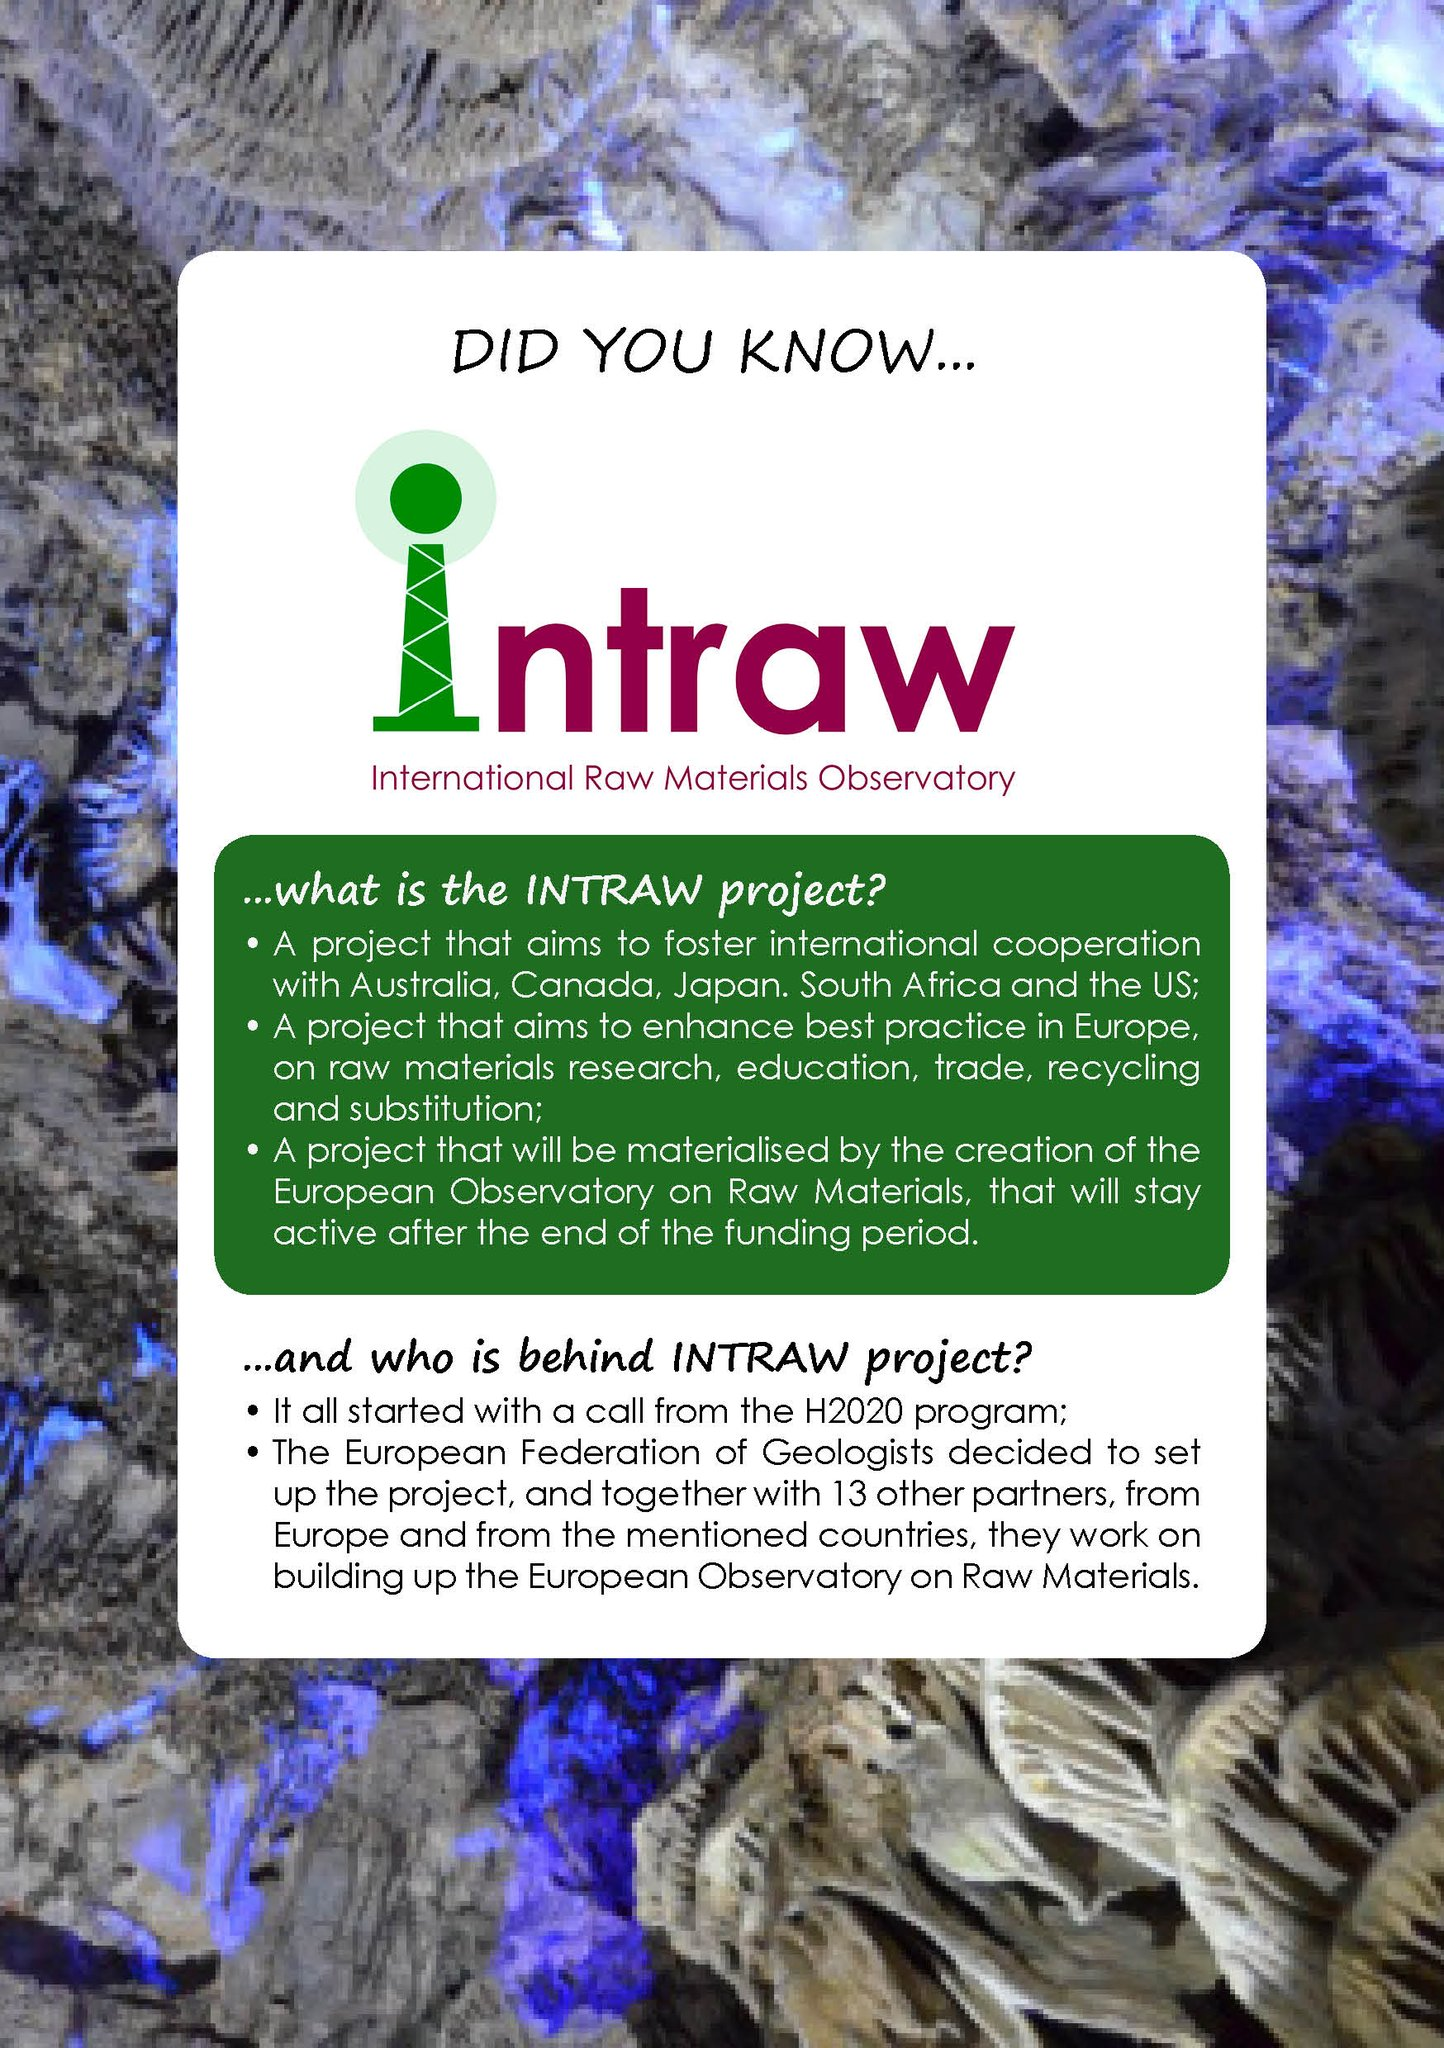 As an introduction of #DiscoverINTRAW, our social media campaign to learn more about the project, learn about the concept of INTRAW!